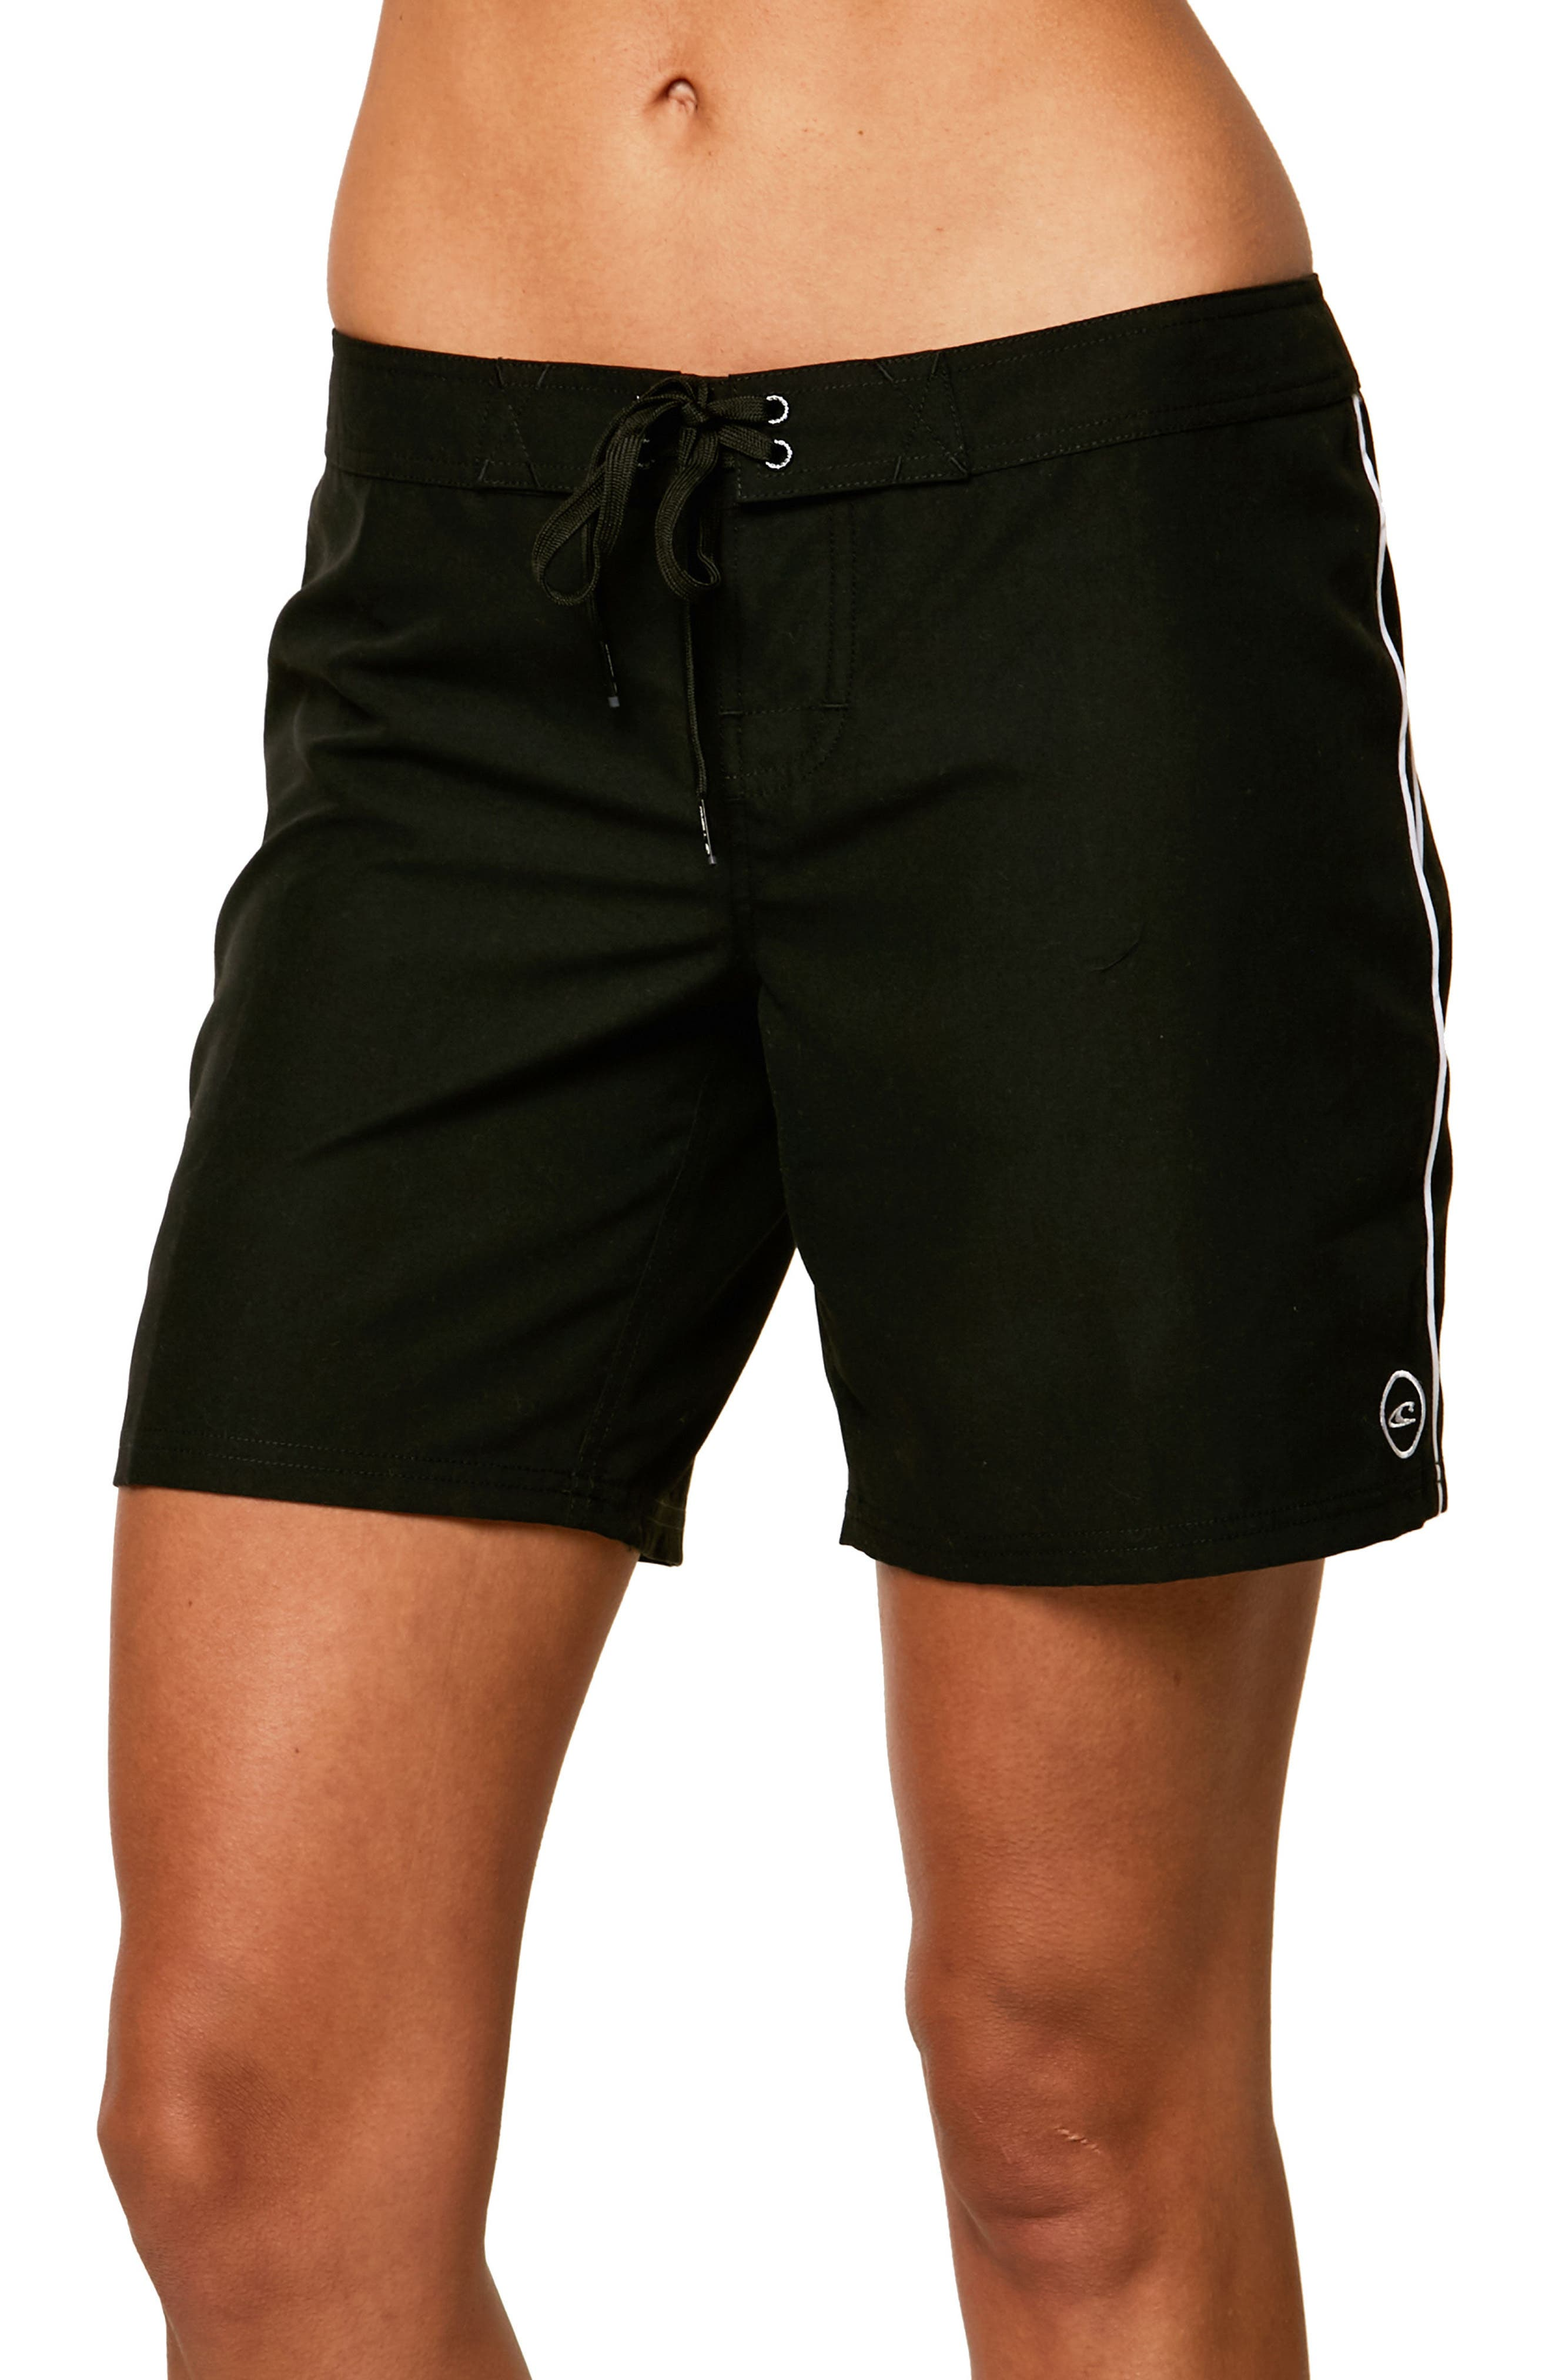 Salt Water Board Shorts,                             Main thumbnail 1, color,                             Black